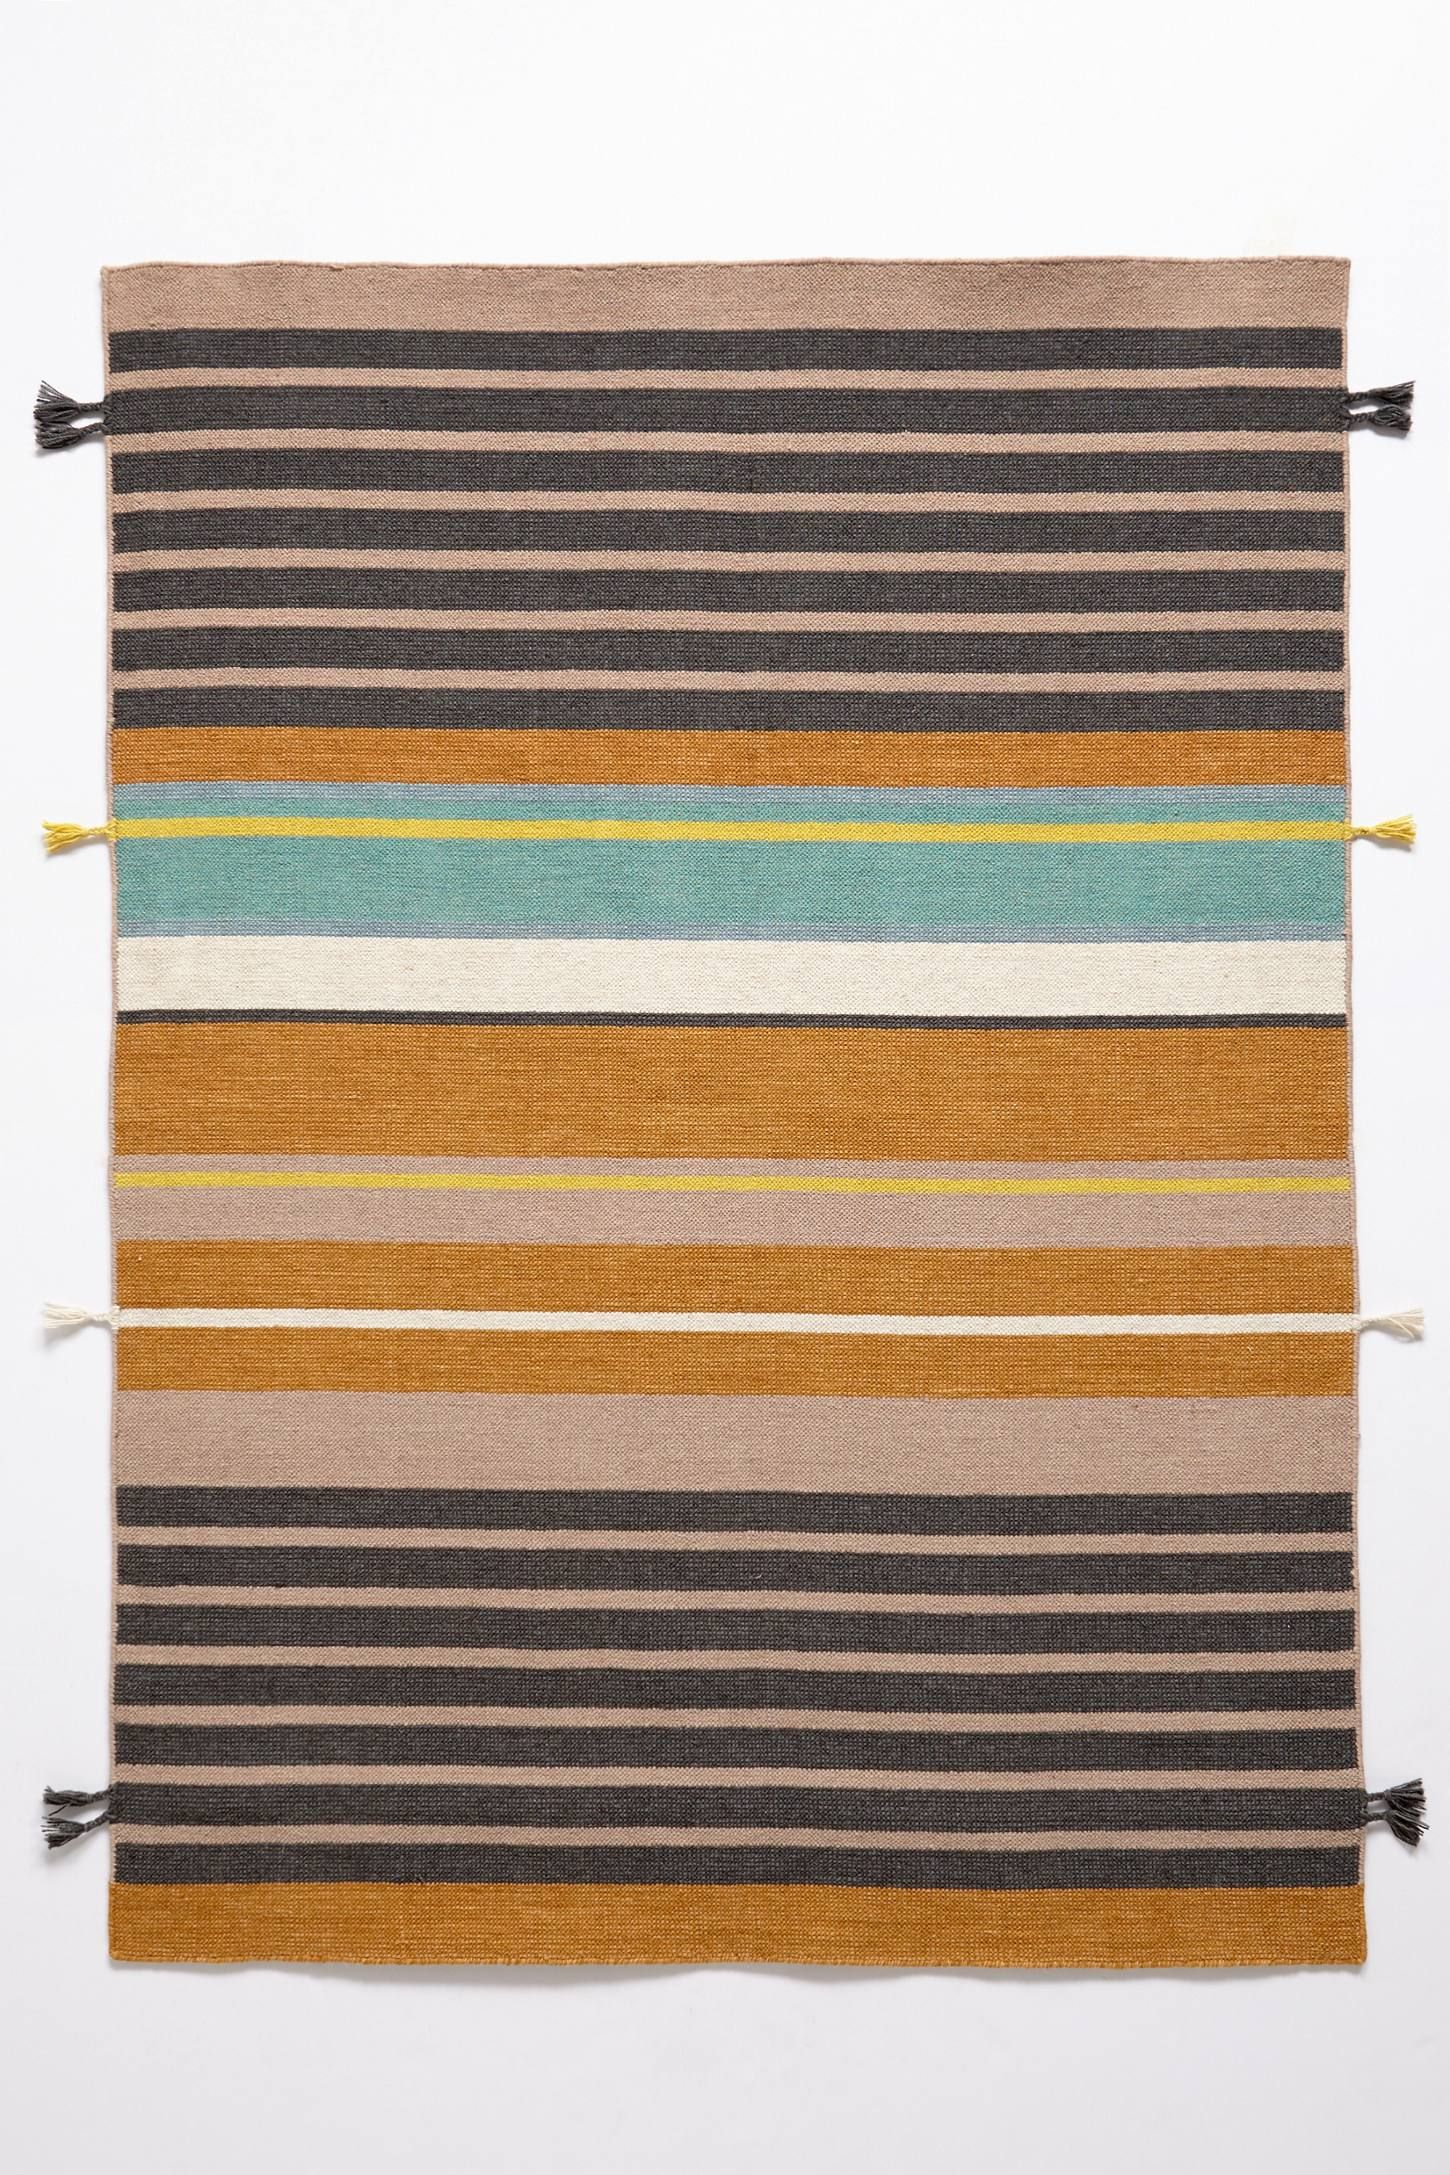 Alfombra Suelo Bebe Premium Felted Rug Pad Textile Woven Fabric Patterns